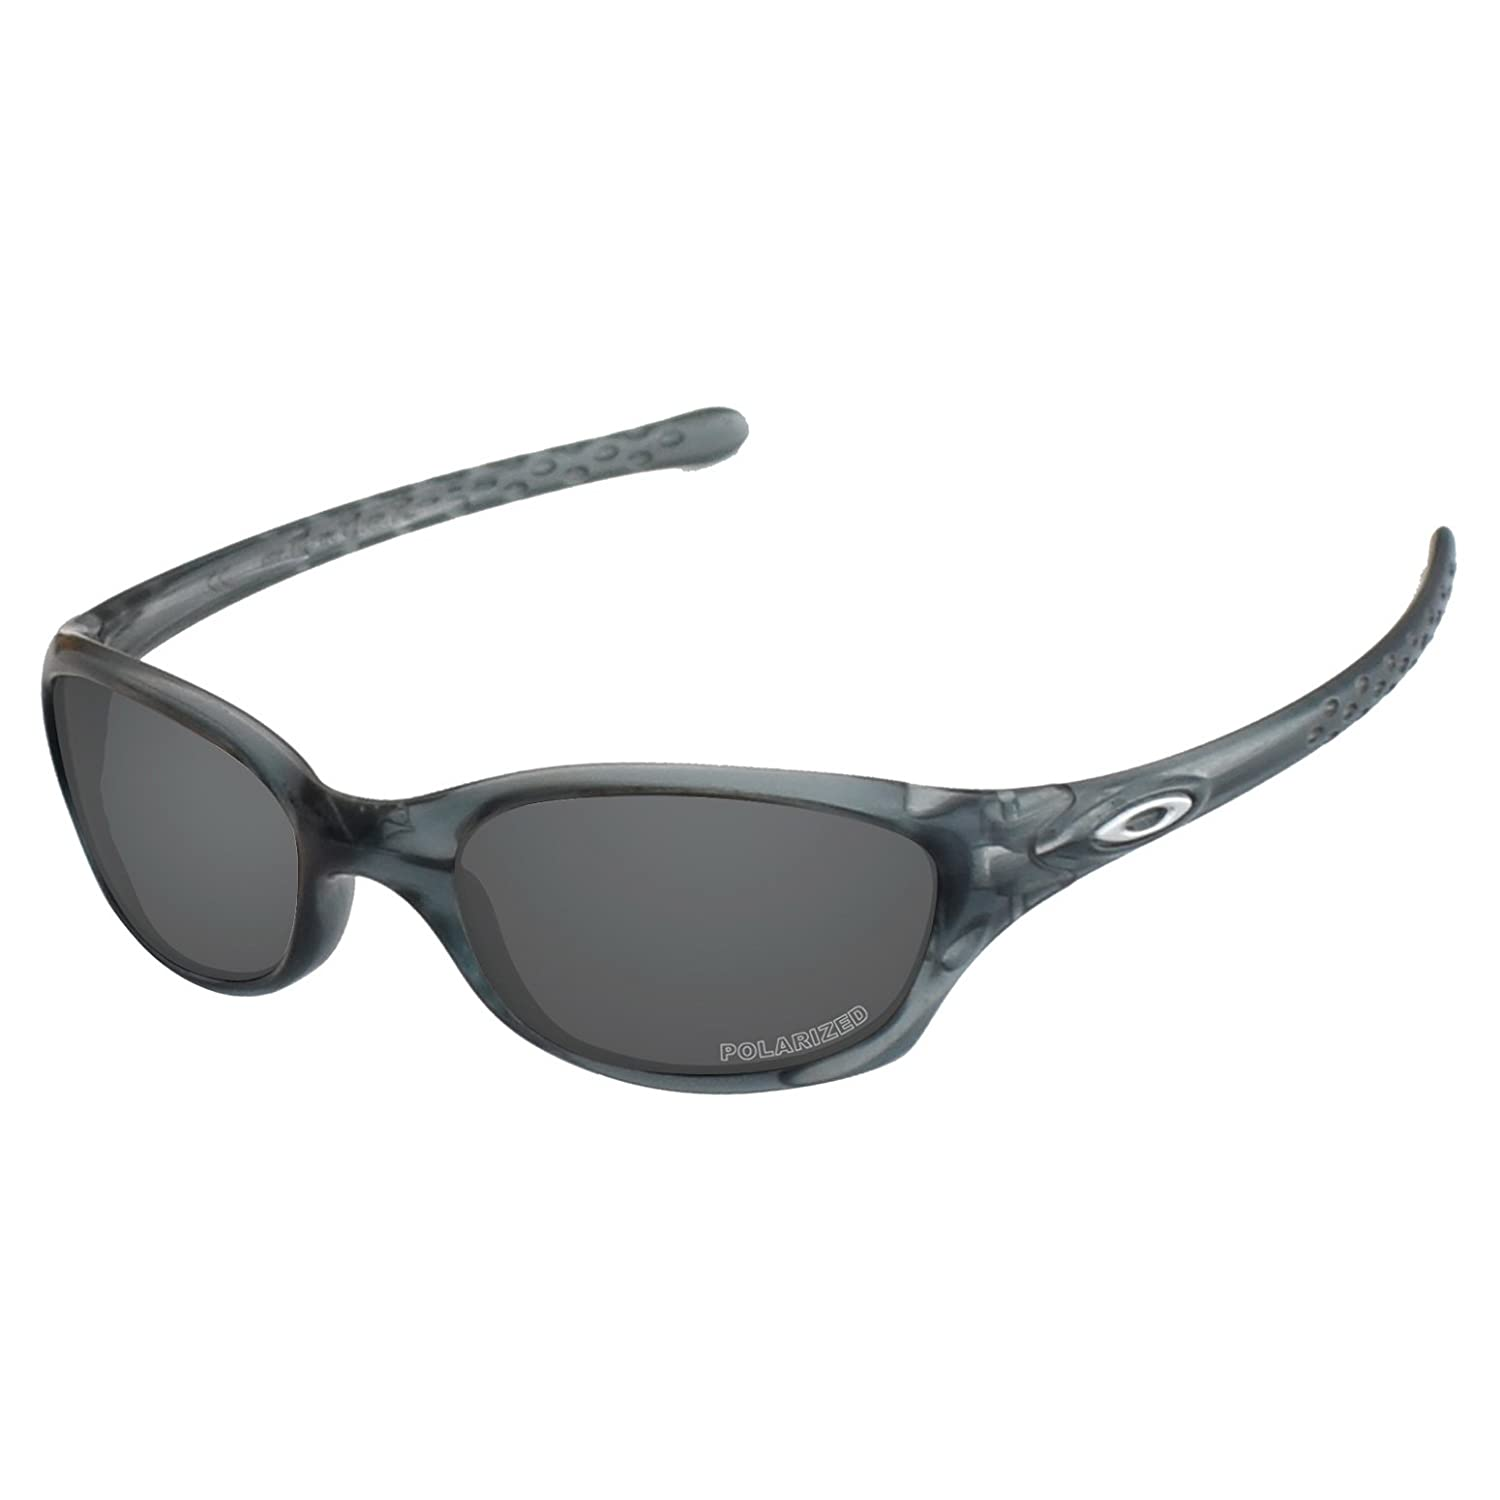 b9f549ba1dc Amazon.com  Tintart Performance Lenses Compatible with Oakley Fives 2.0 Polarized  Etched-Carbon Black  Clothing